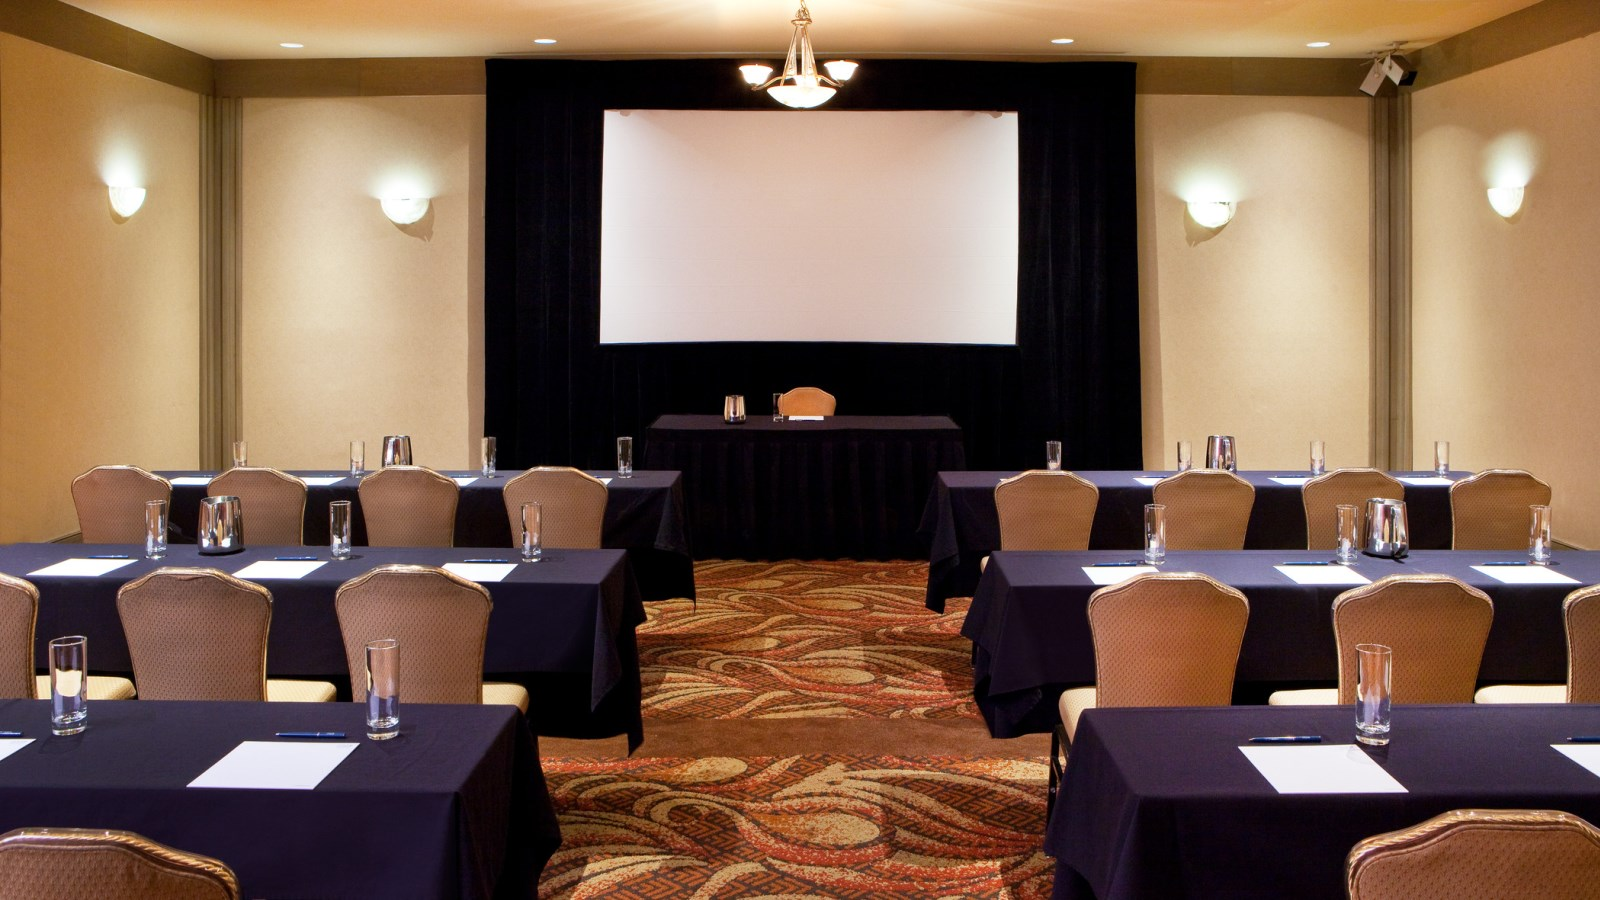 Event Venues in Phoenix - Classroom Meeting Space